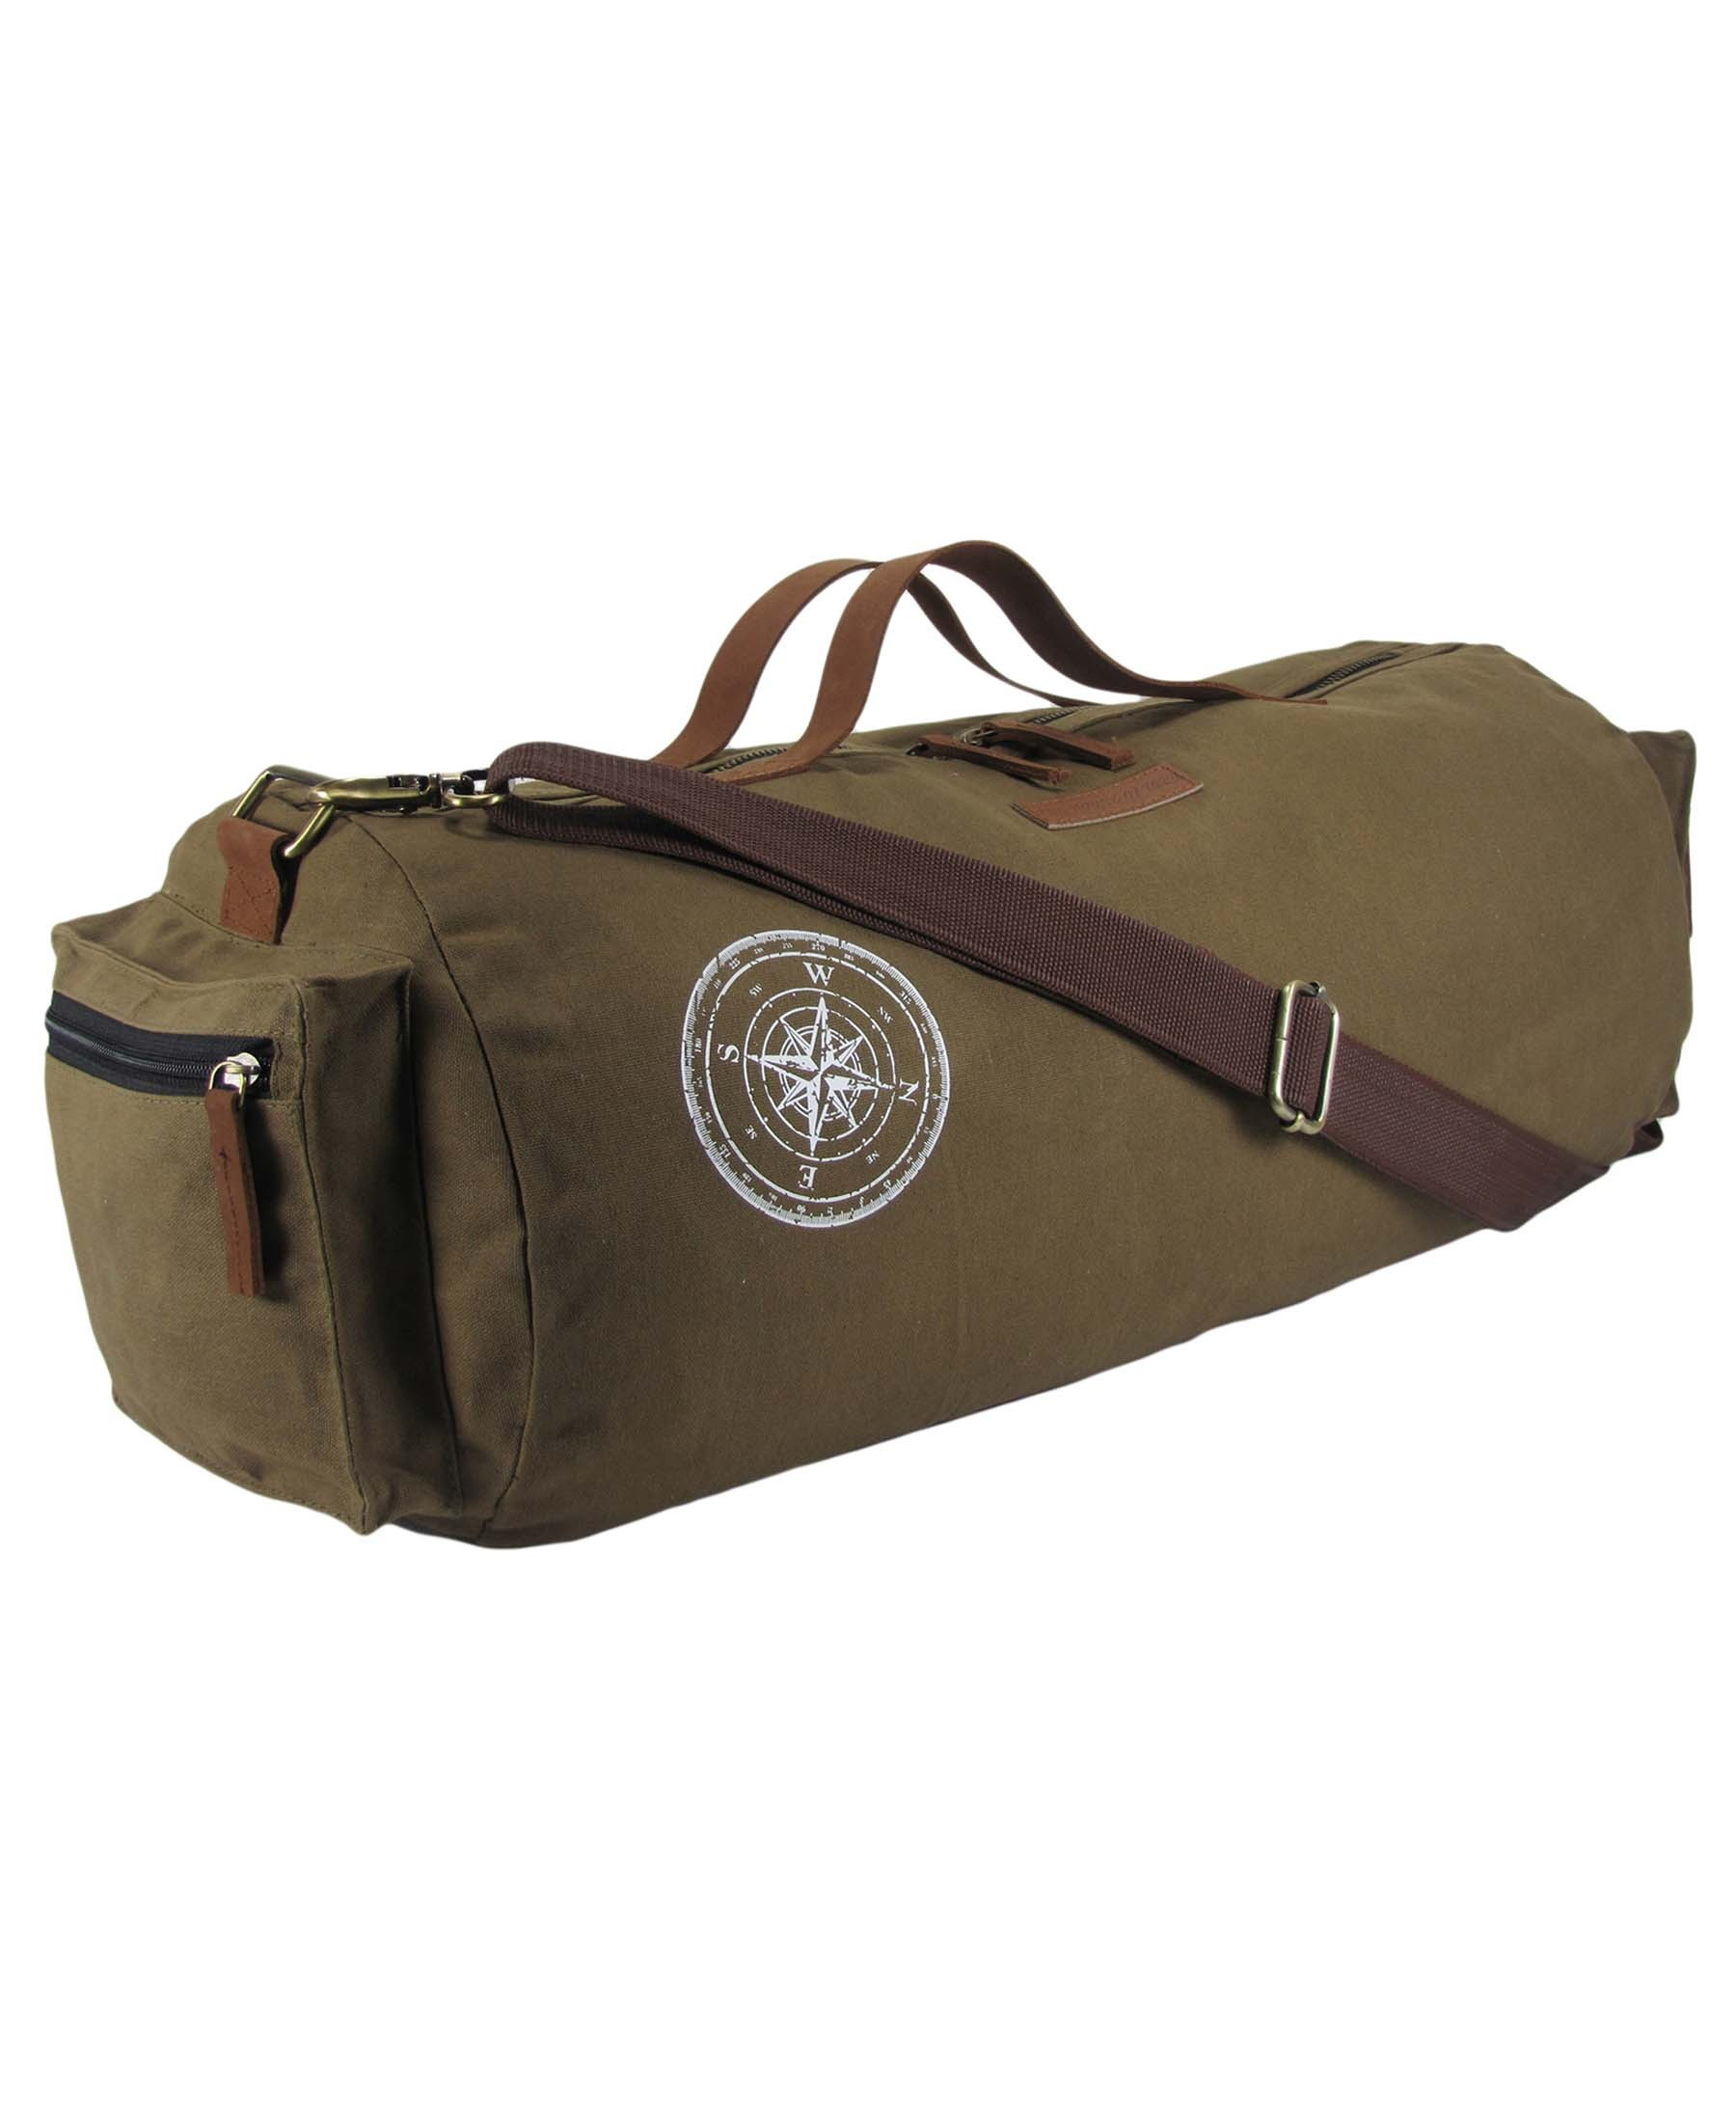 The House Of Tara Waxed Canvas Duffle Gym Bag Travel